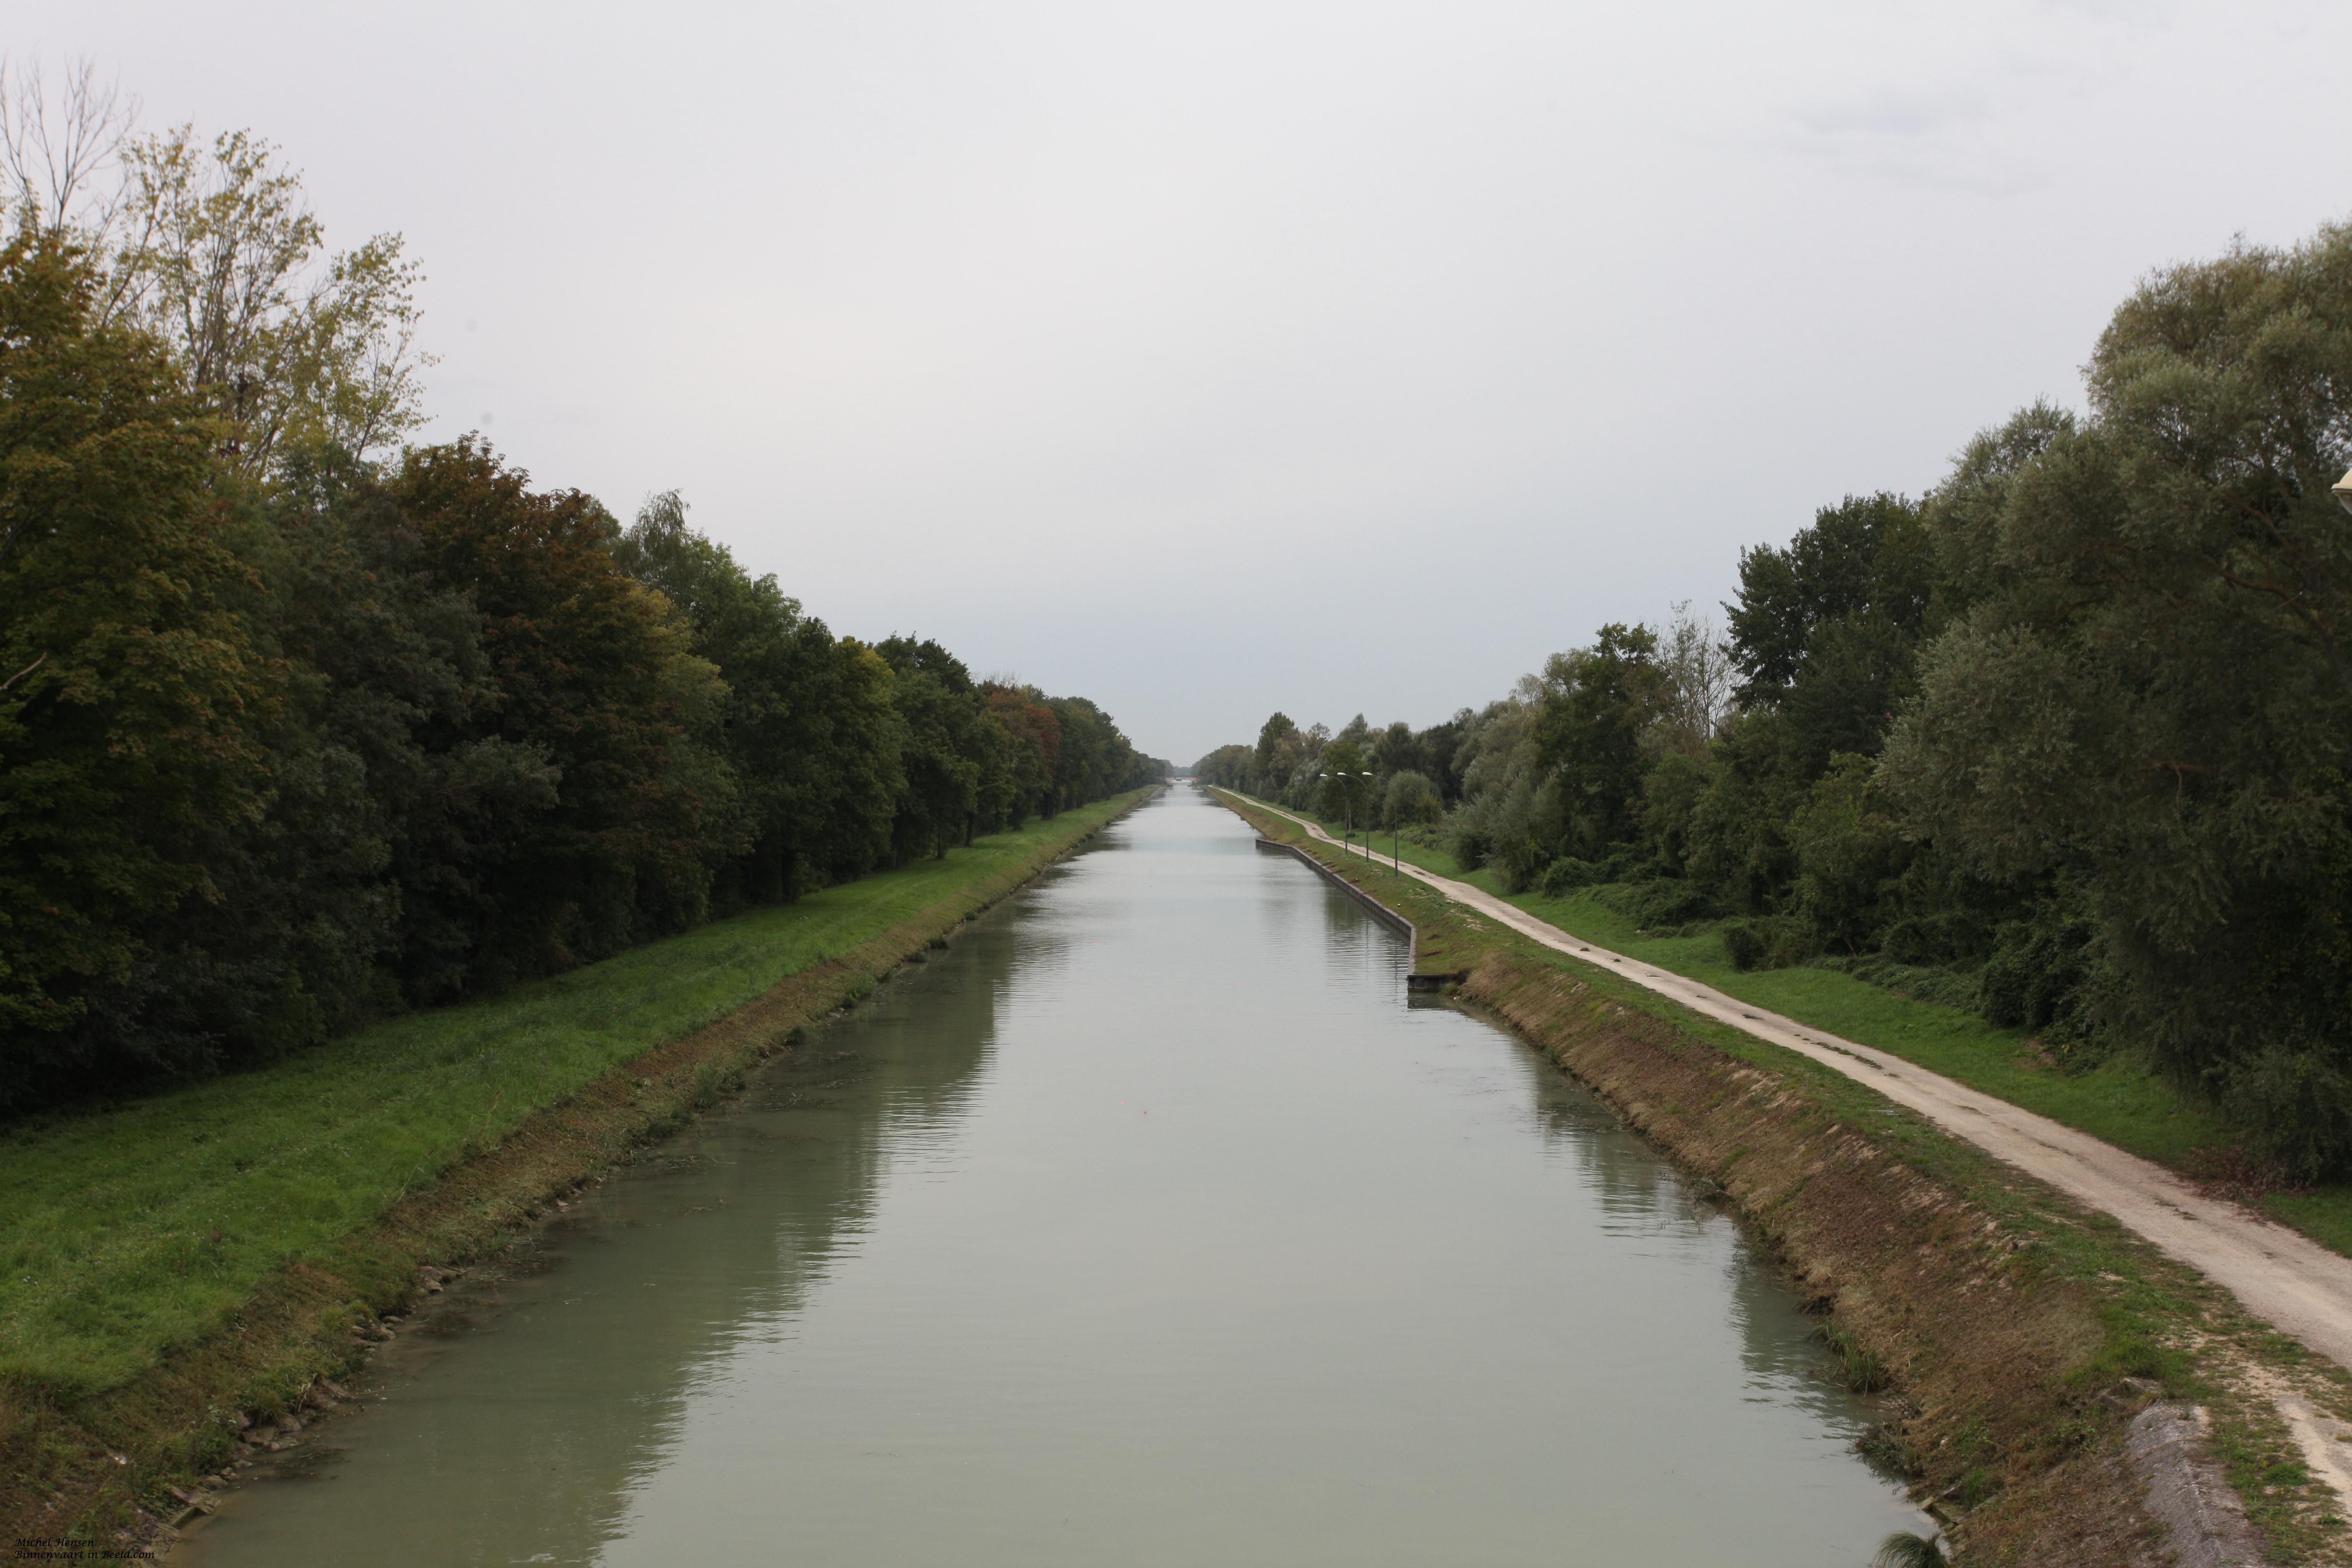 Canal derivation de Beaulieu à Villiers-sur-Seine